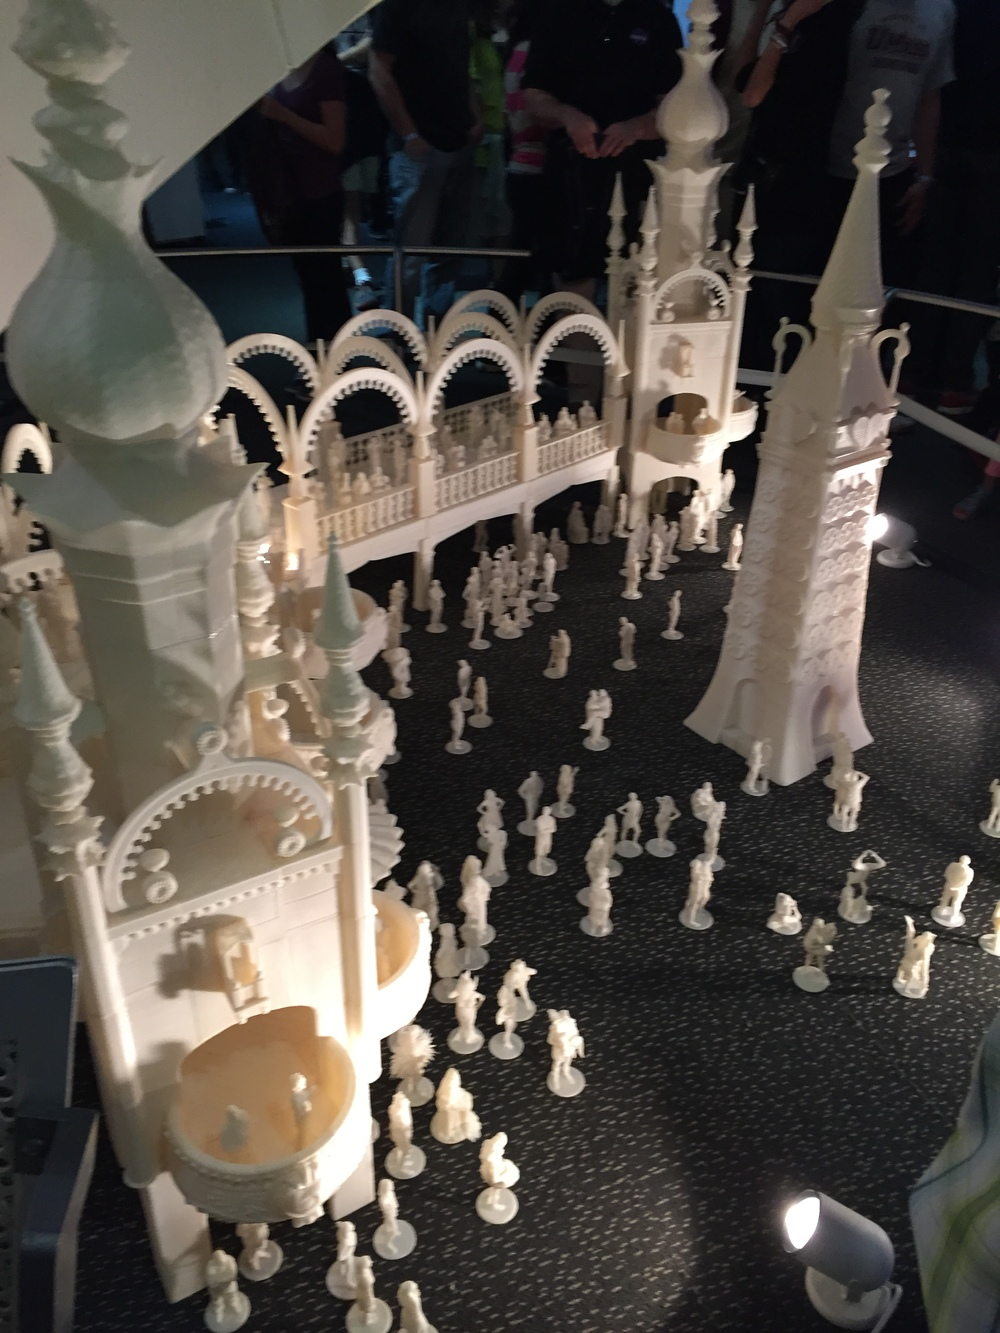 Some Meadowbrook 3D scans were included in the Great Fredini's Coney Island display.